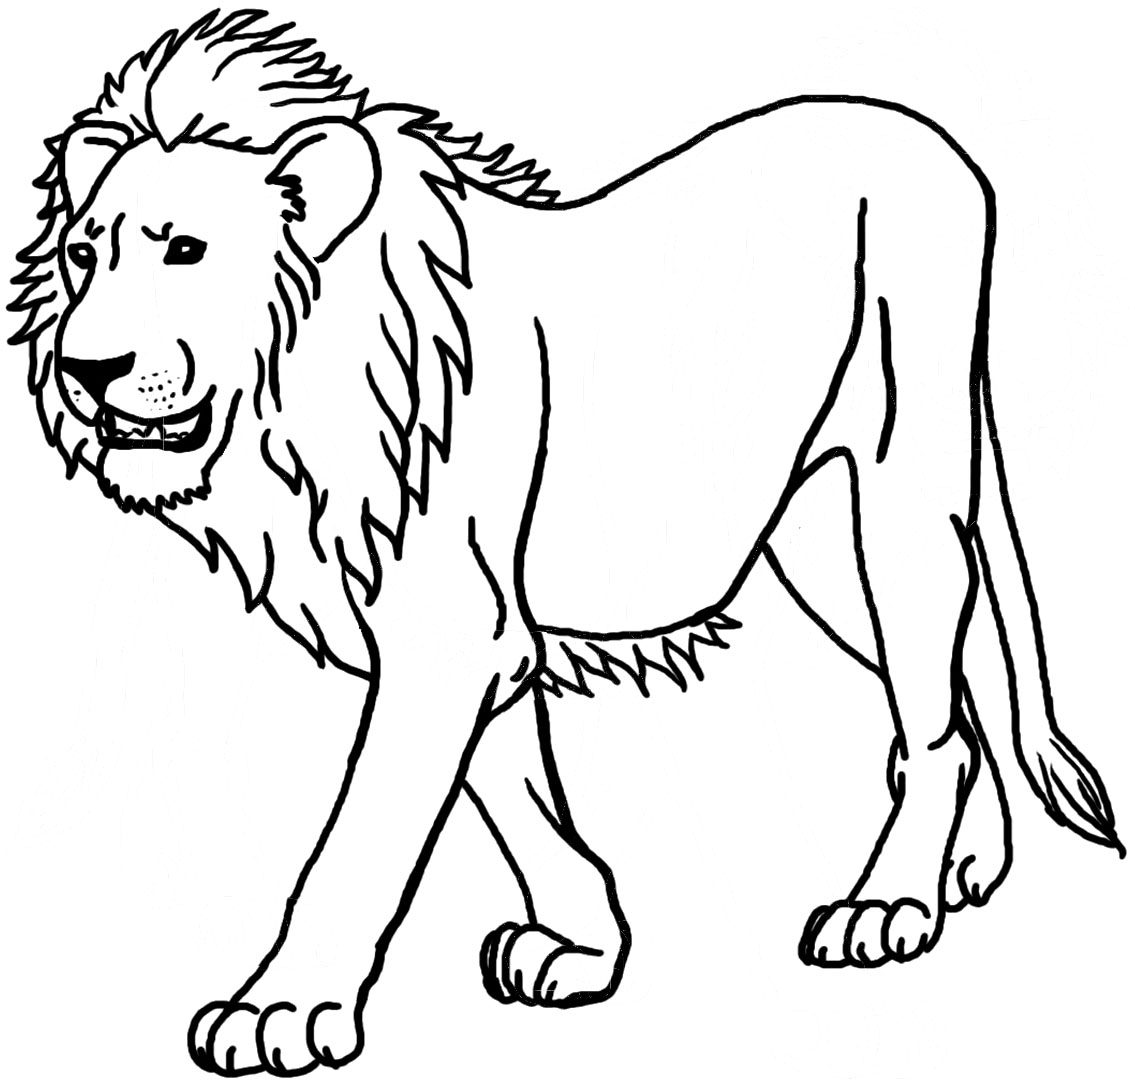 1135x1080 Drawing Coloring Page Of A Lion 98 In For Kids With Coloring Page